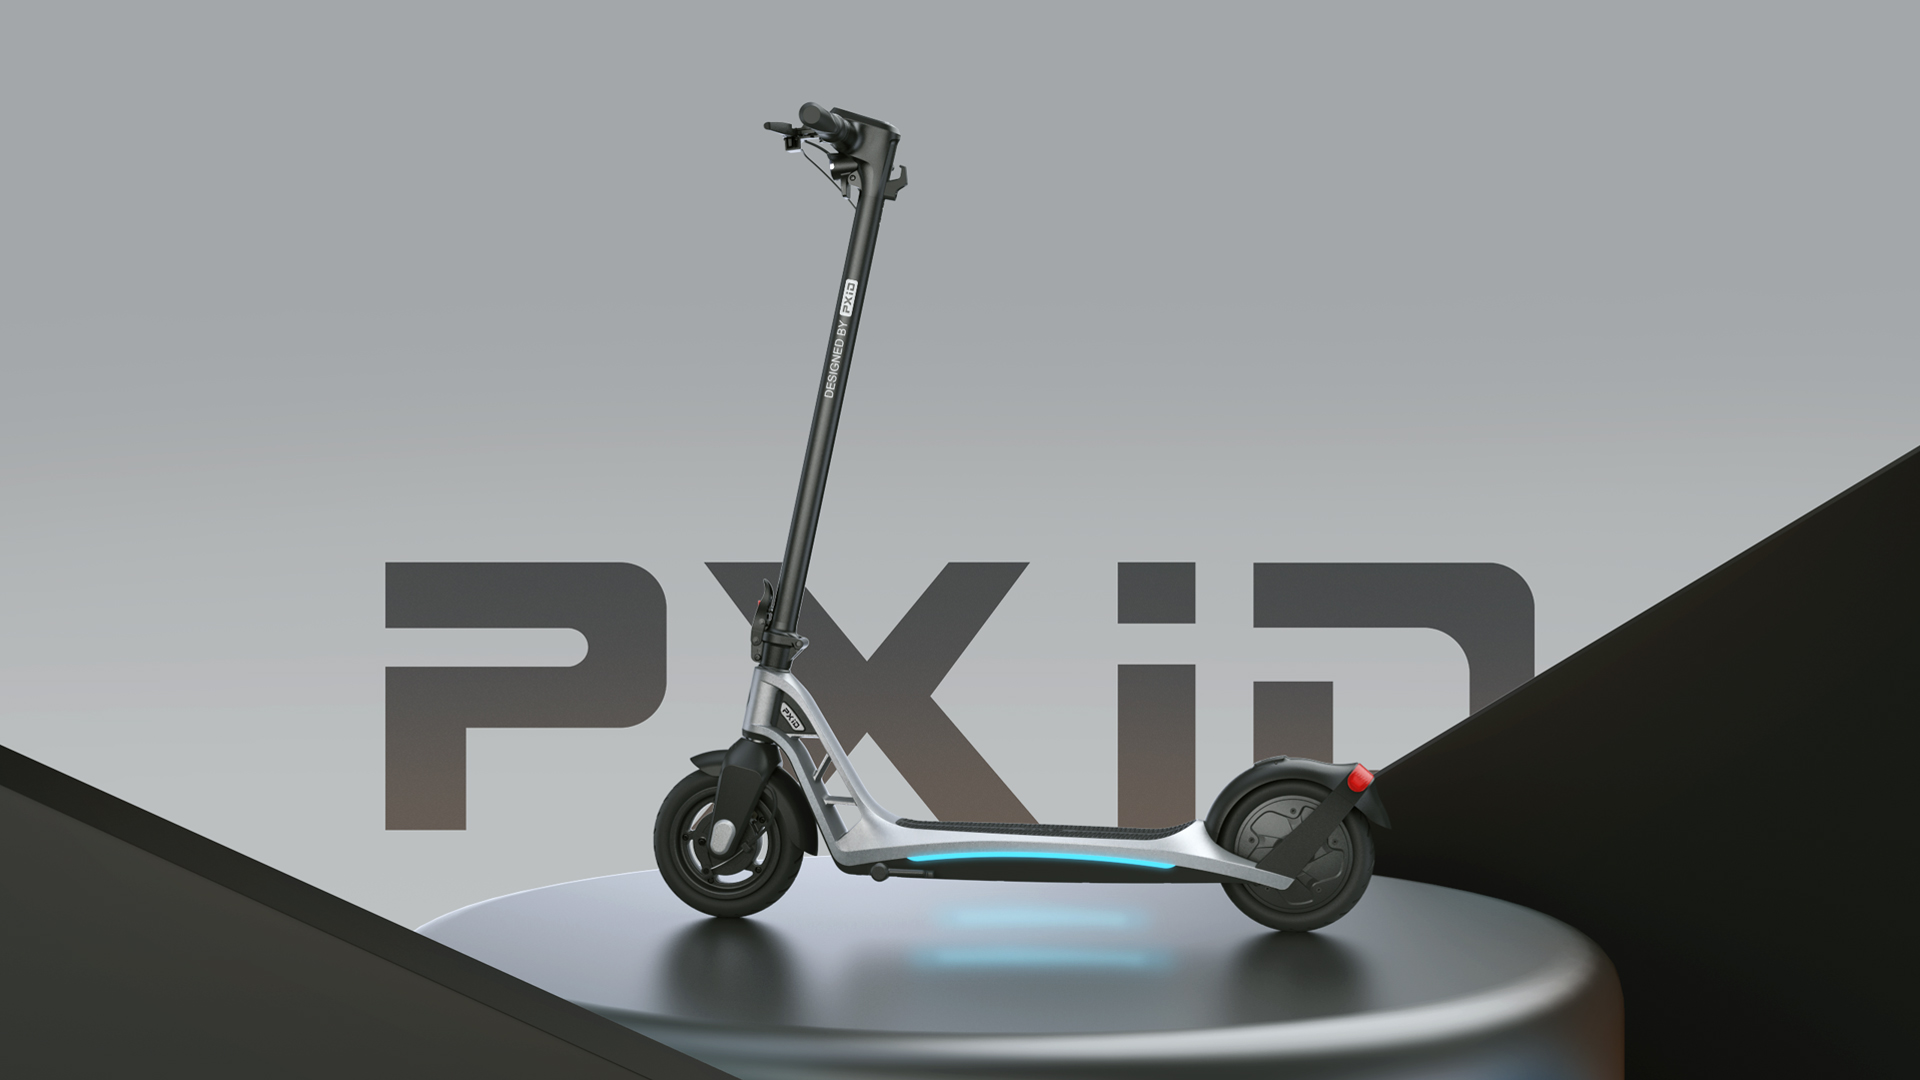 H10 2021 New Model Adult Electric Scooter